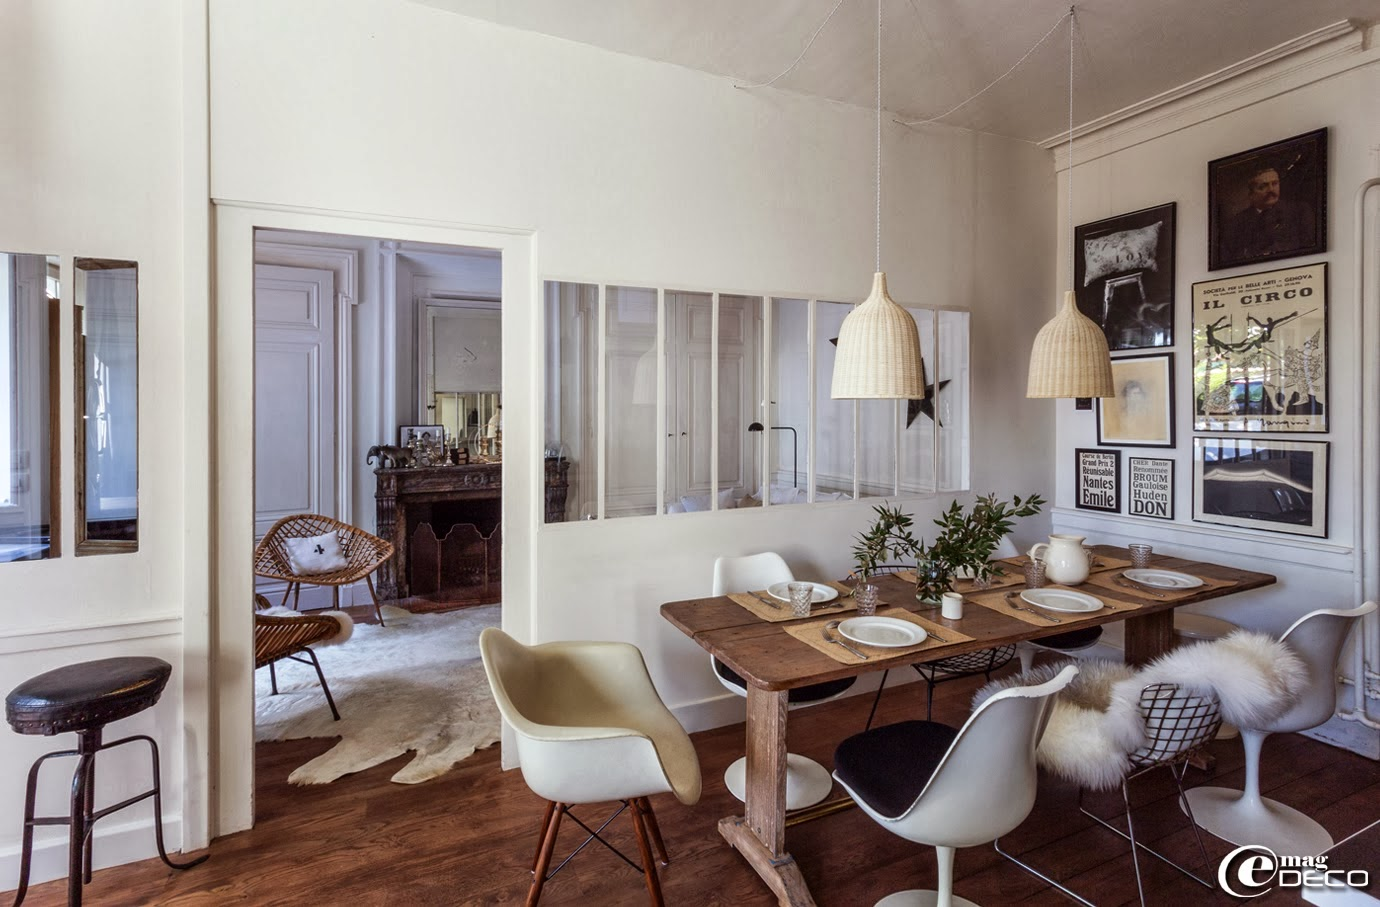 Interior Decorative: Florence Bouvier's House In Lyon